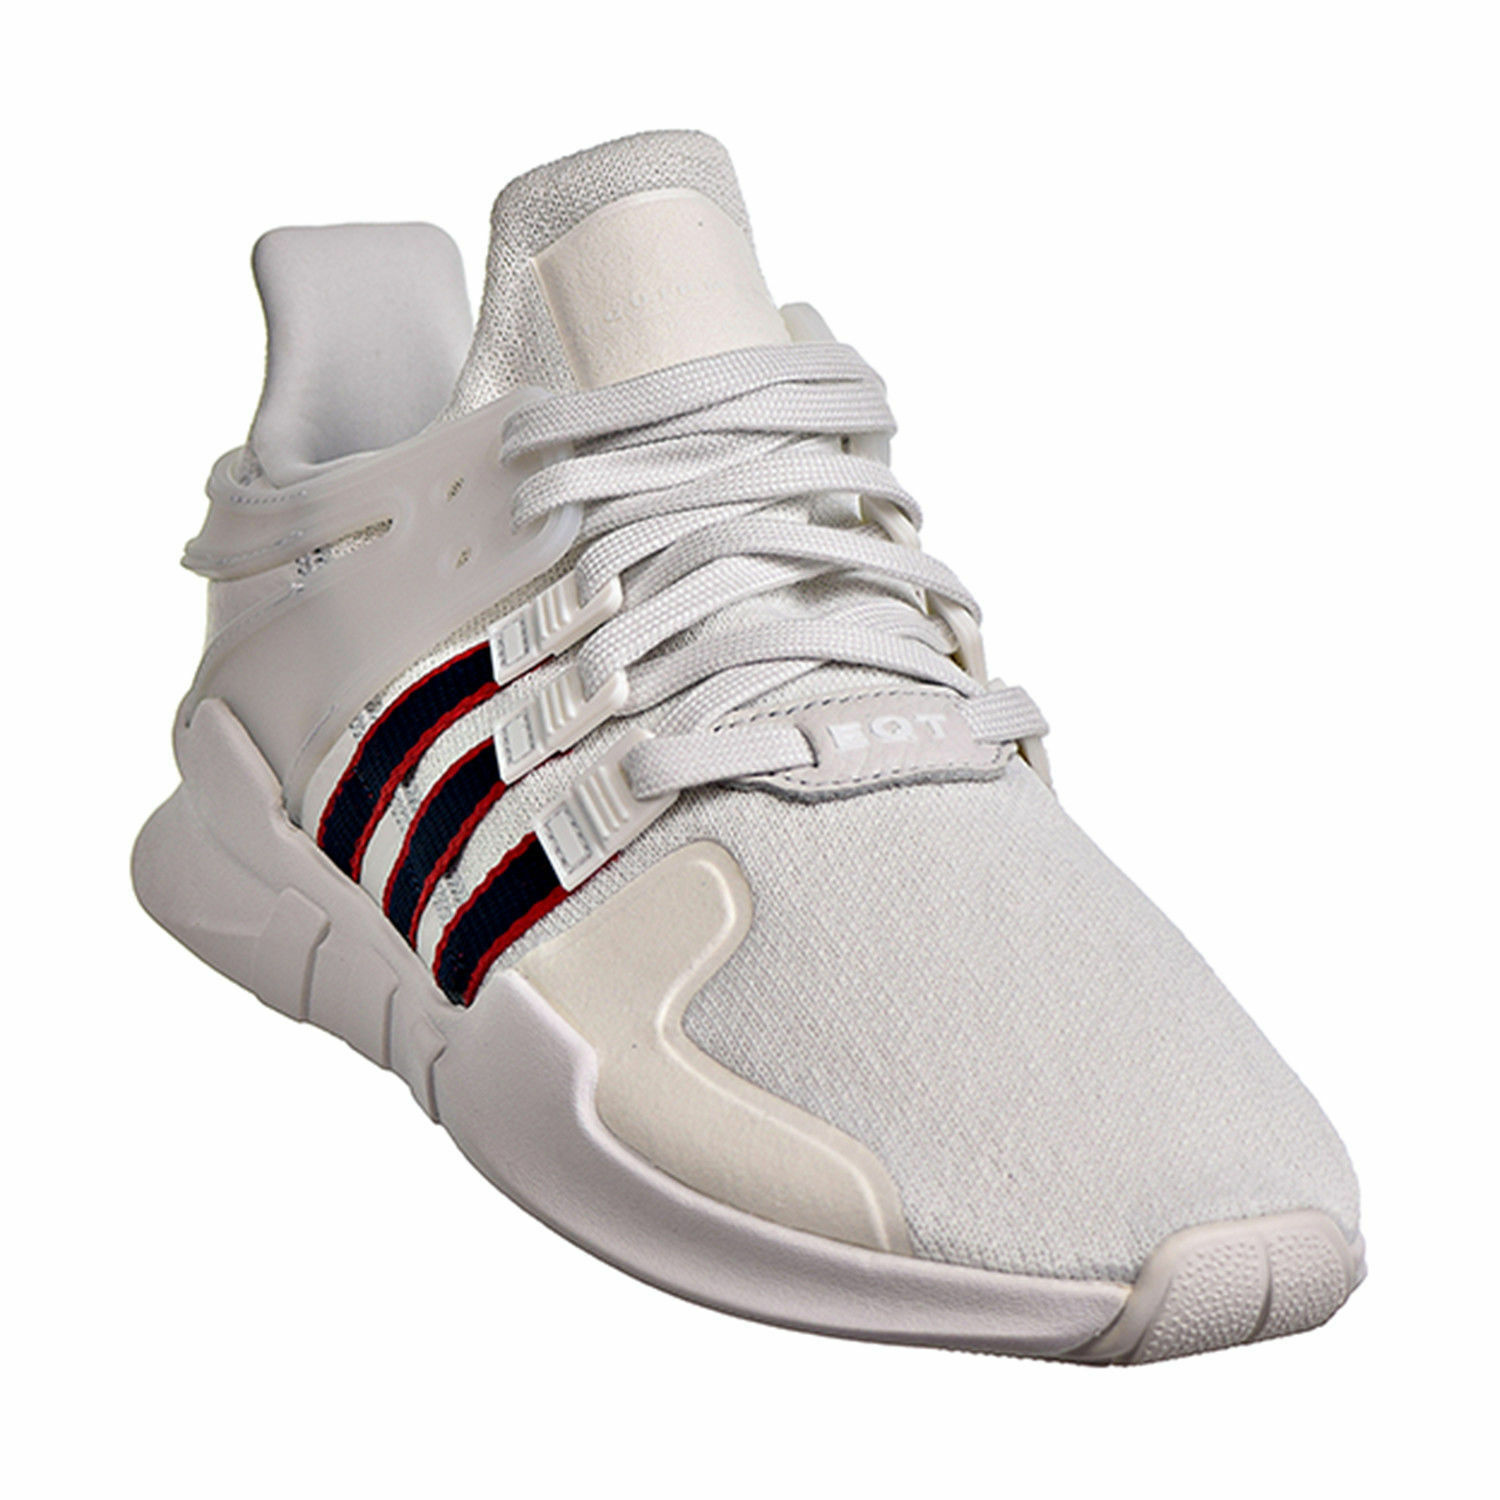 New Adidas Equipment Support ADV Men's Shoes Crystal White/Navy/Scarlet BB6778